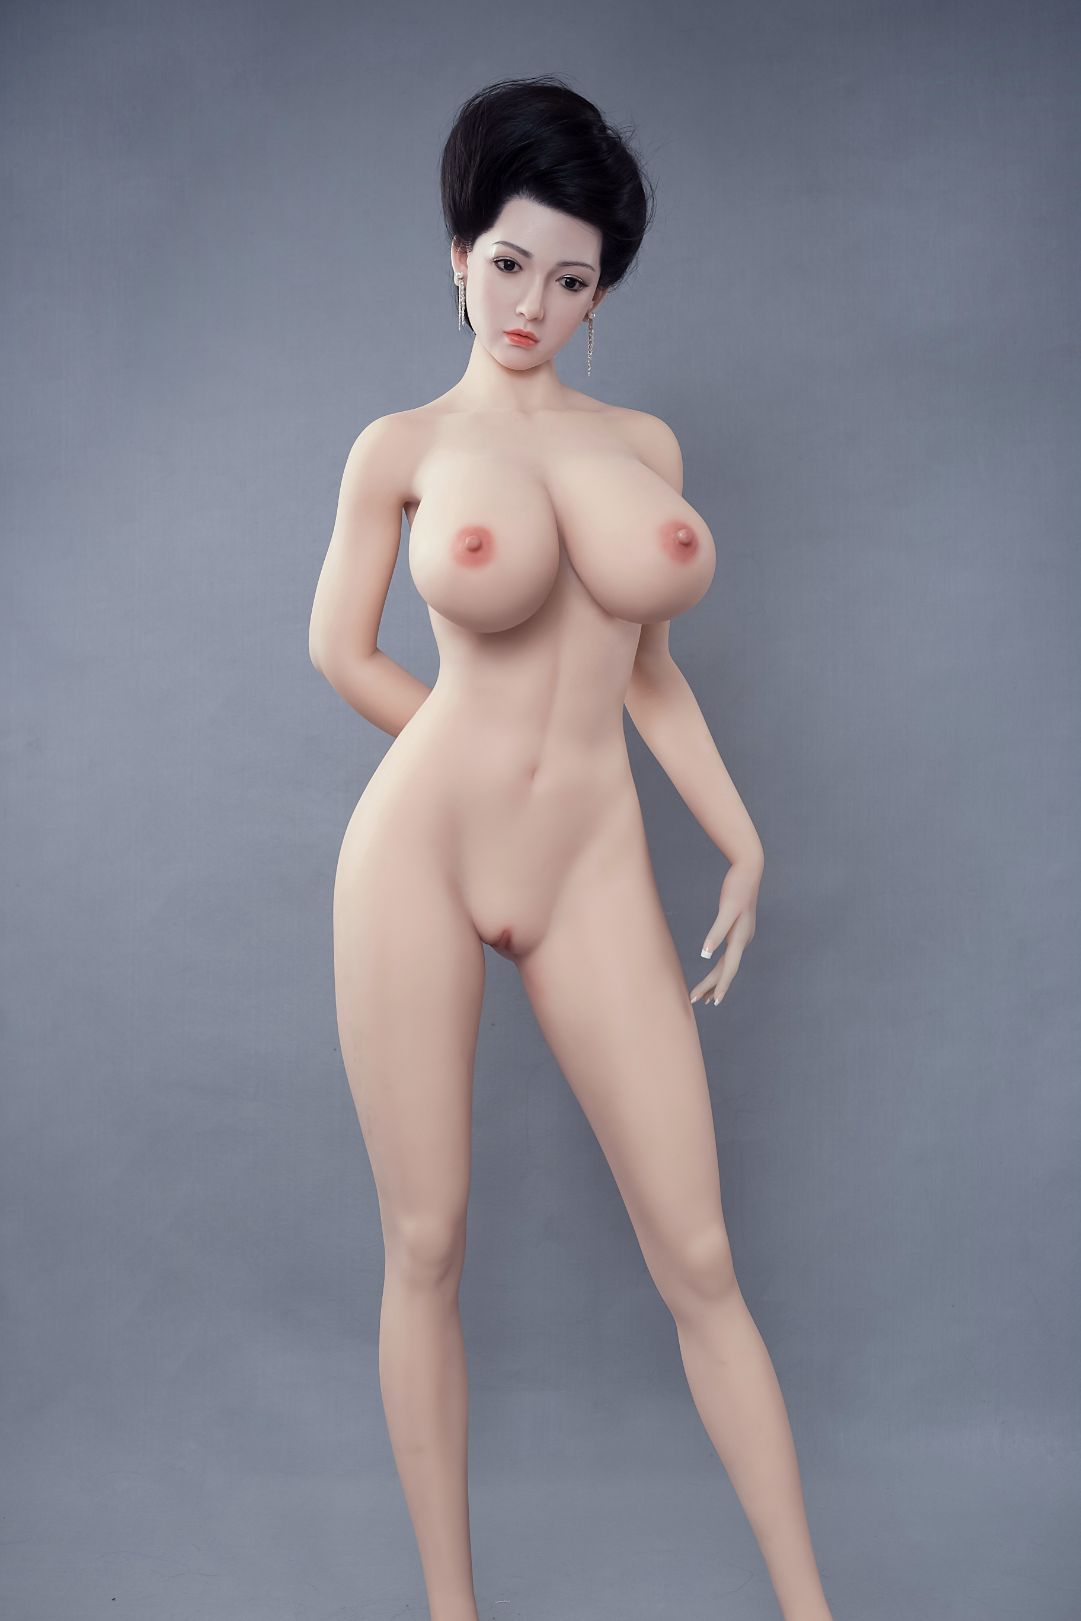 graciela 170cm af black hair big boobs athletic tpe sex doll(8)